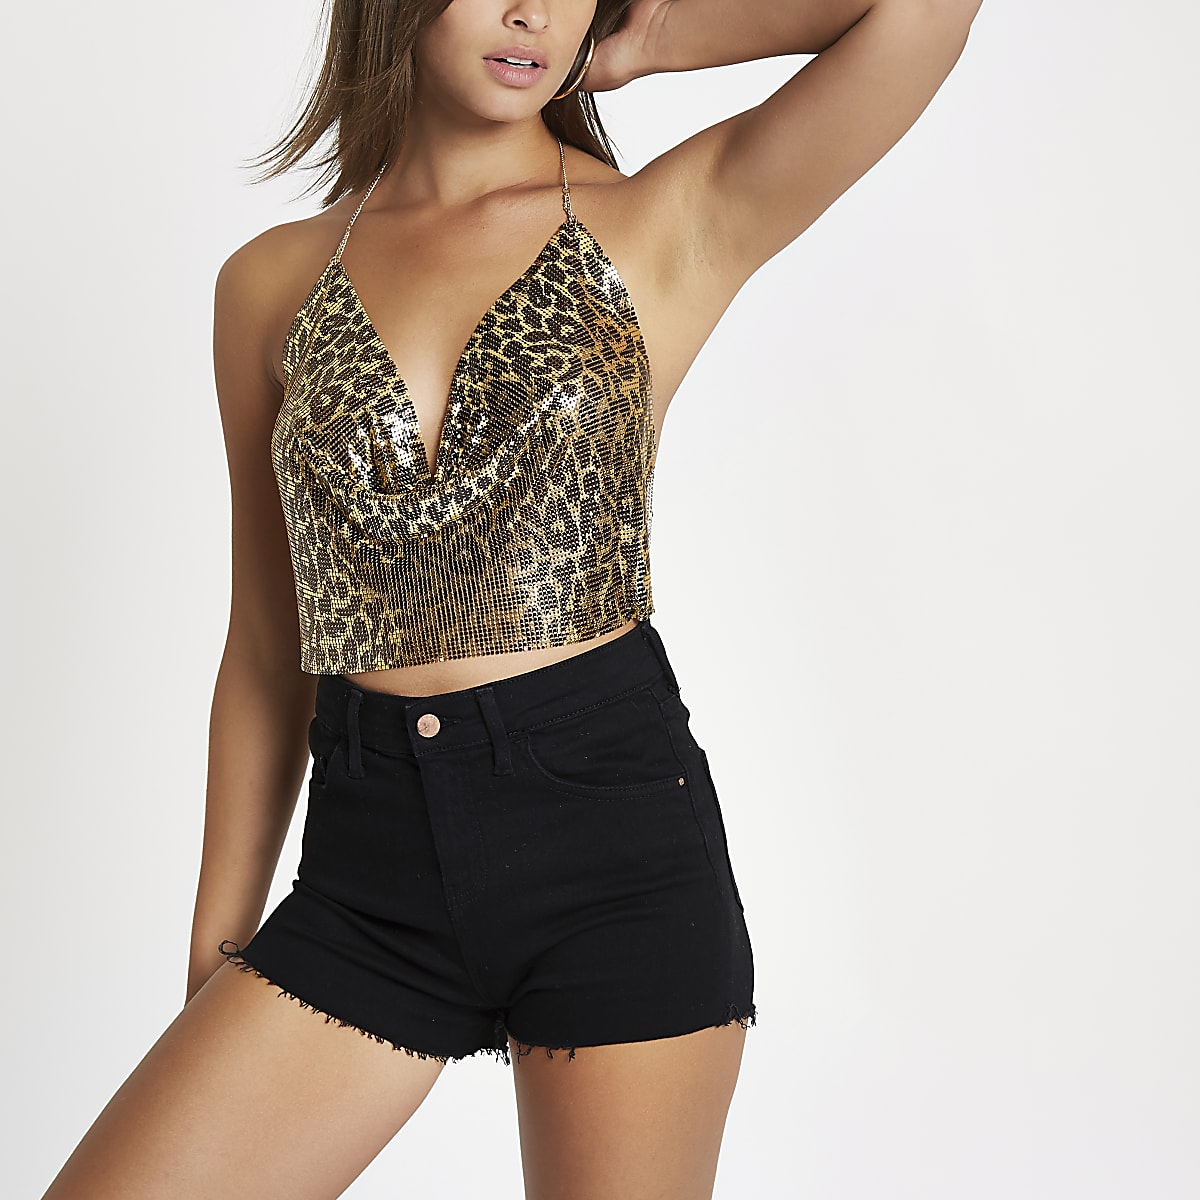 Gold tone leopard print chainmail harness top